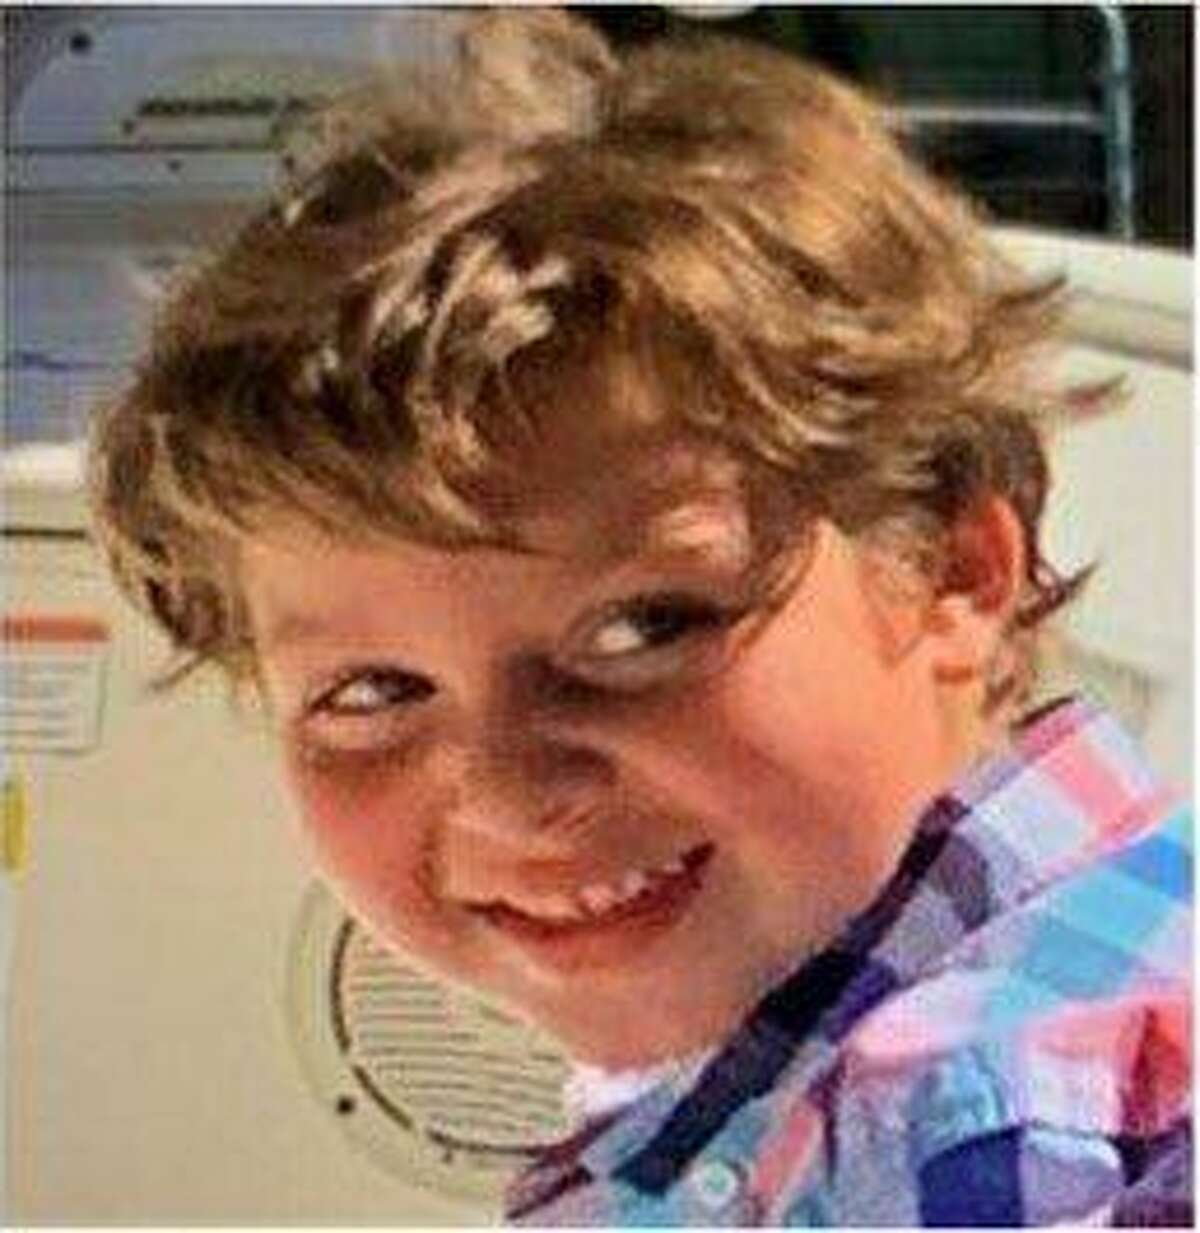 Samuel Olson, 6, was reportedly taken last Thursday from his southwest Houston home, according to his missing person report.